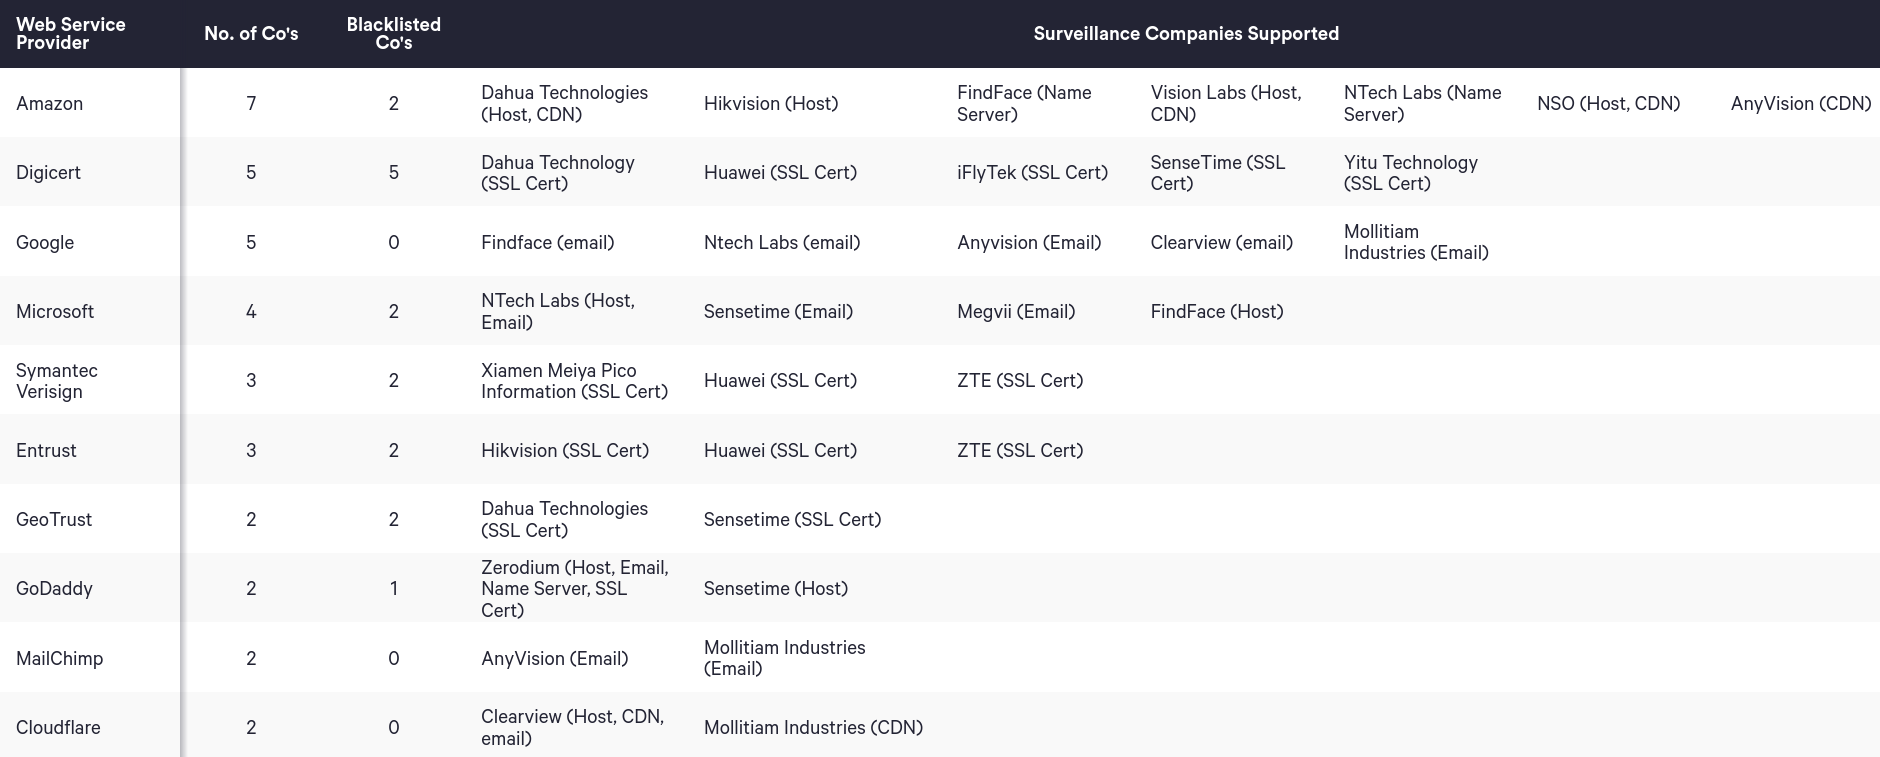 big-tech-supporting-blacklisted-surveillance-companies-03.png